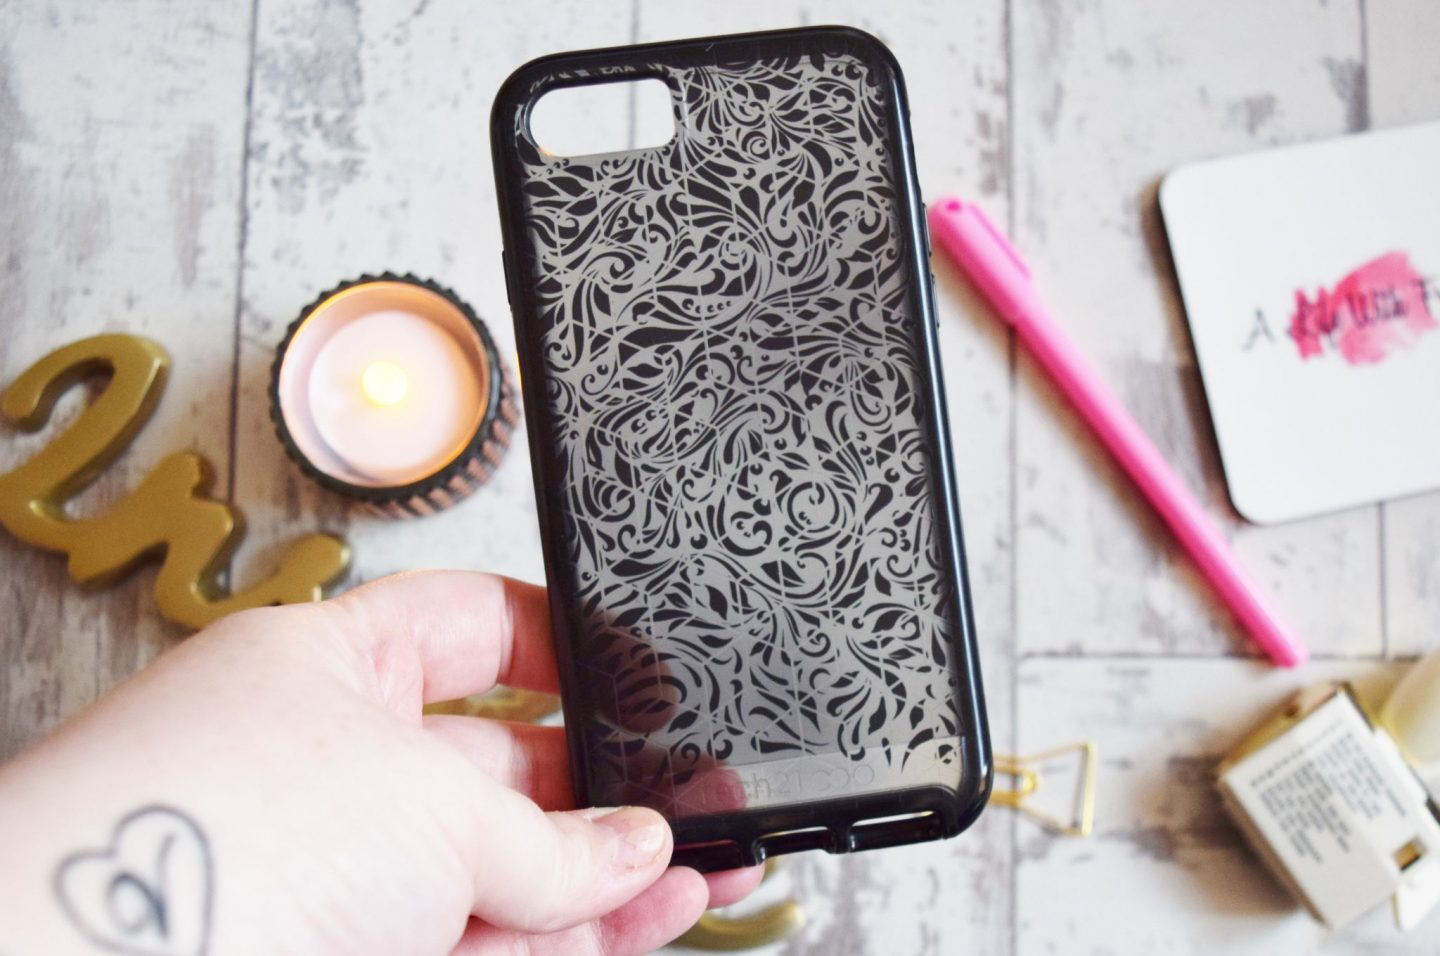 tech21 Evo Elite Lace Edition for iPhone 7 / iPhone 8